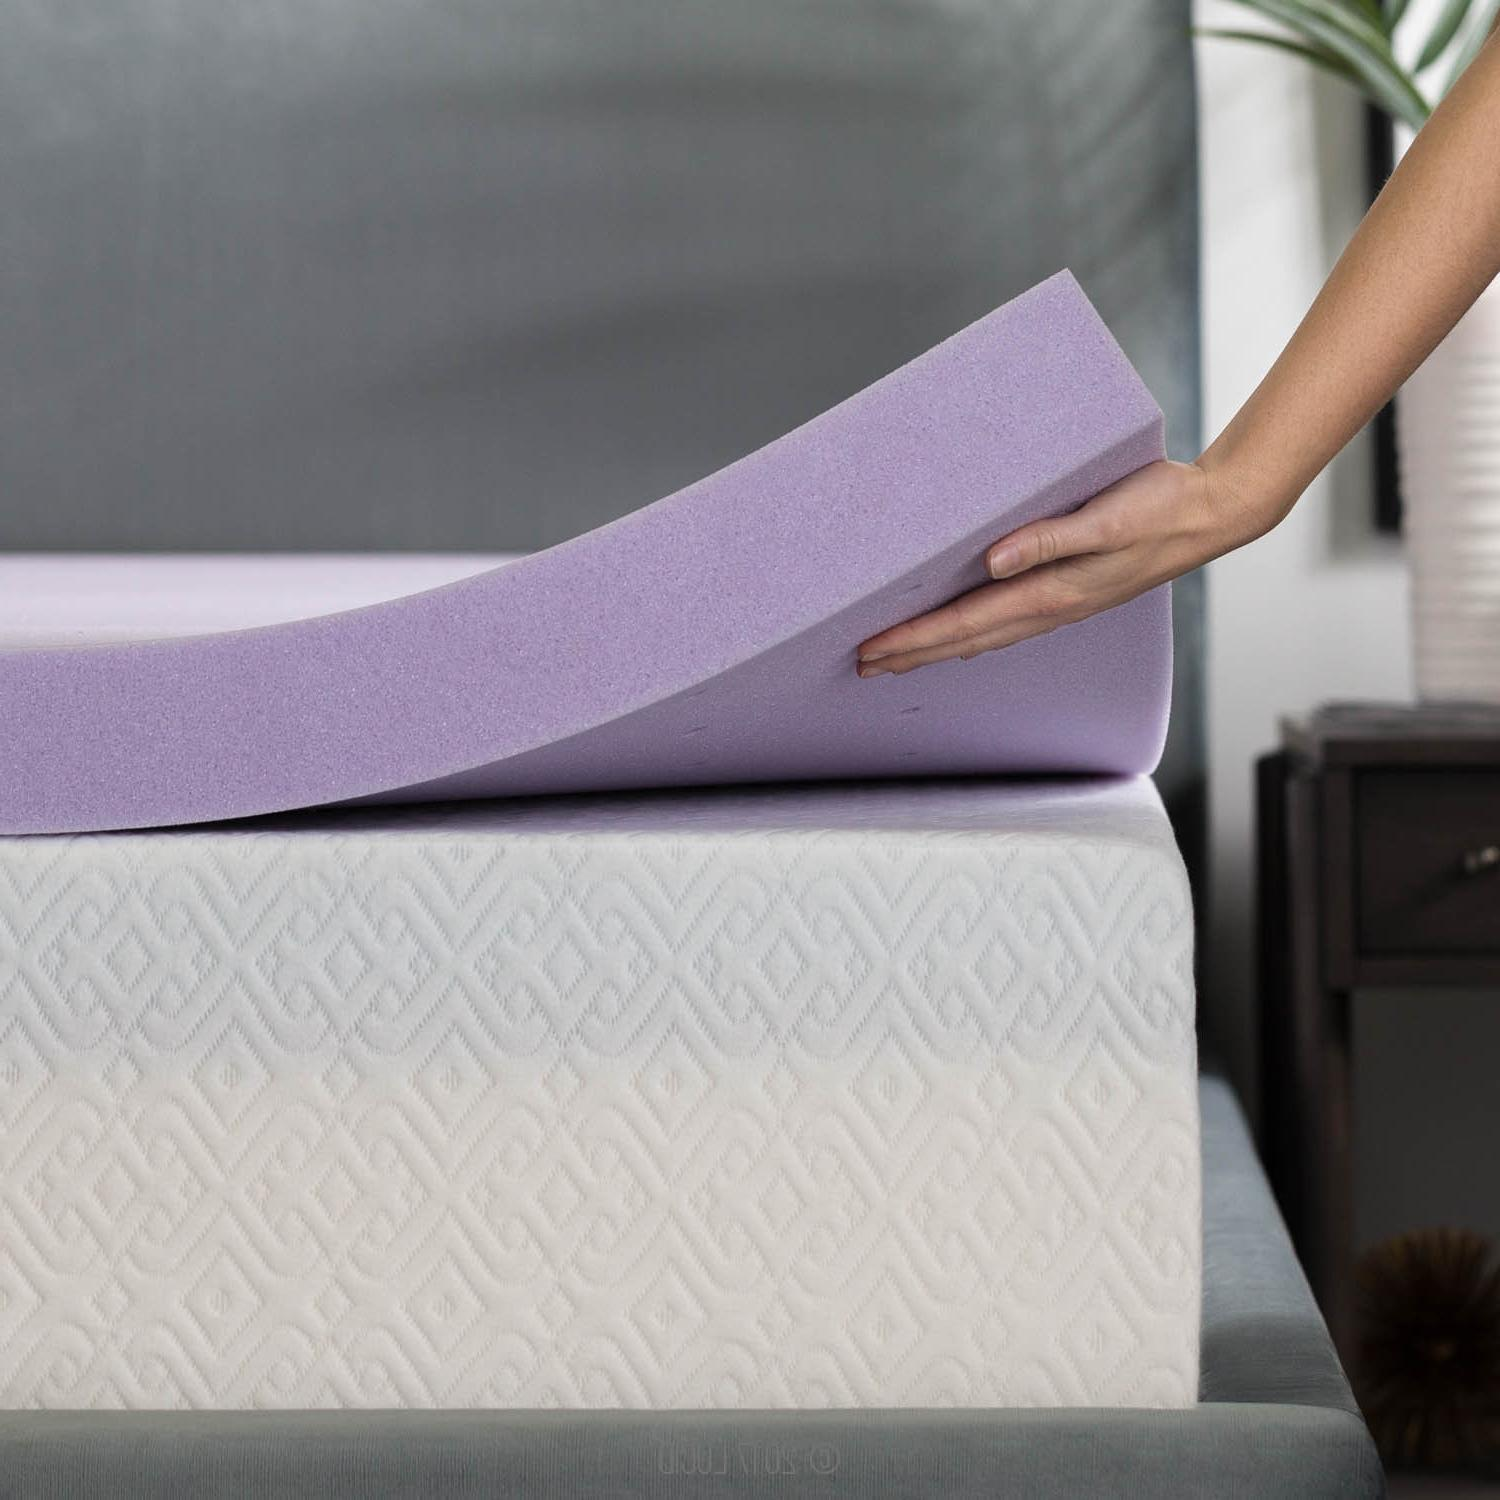 3 Inch Lavender Infused Memory Foam Mattress Topper - Ventil